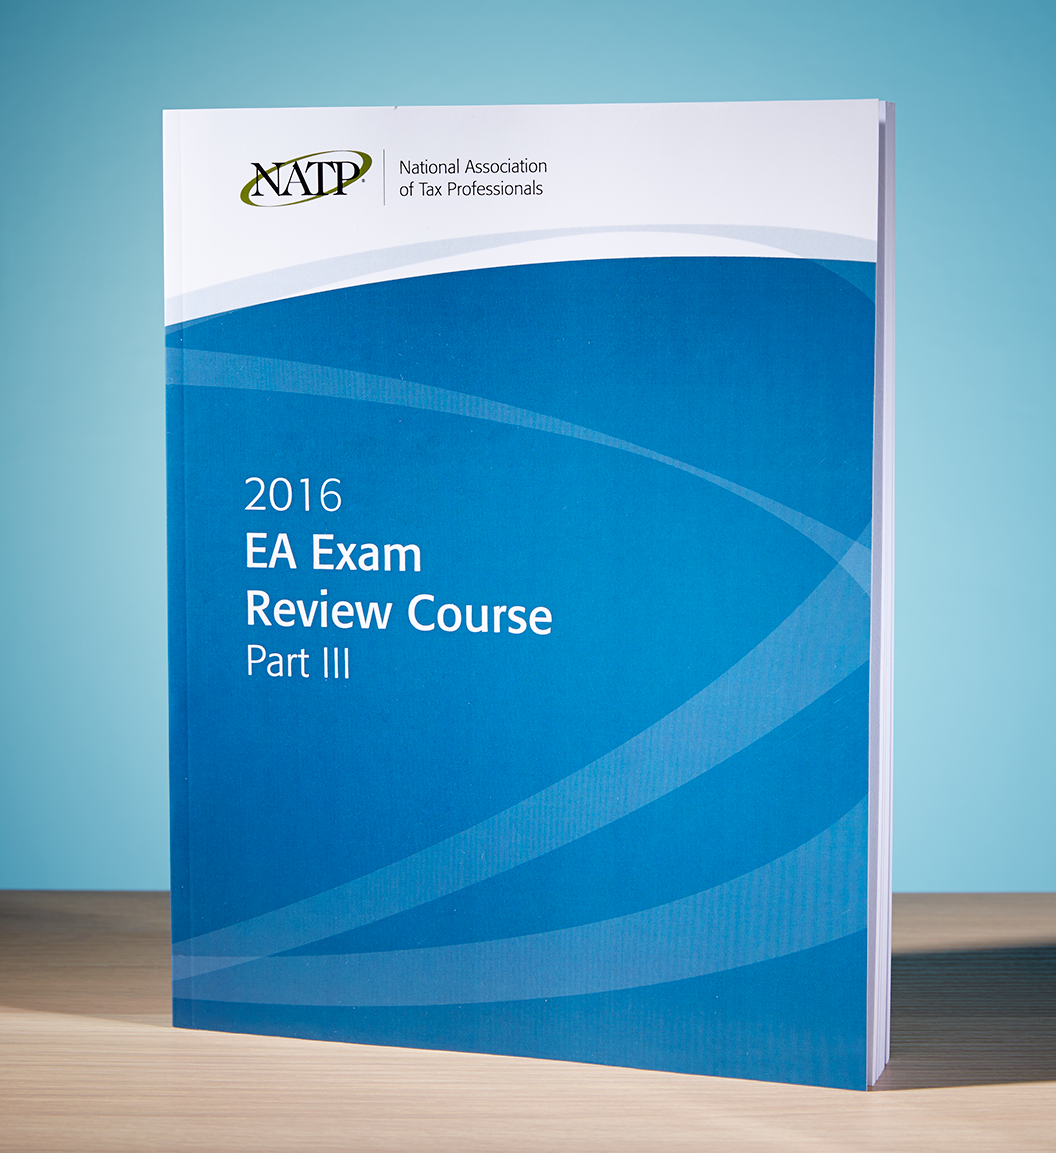 EA Exam Review Course Part III Textbook (2016) - #3605